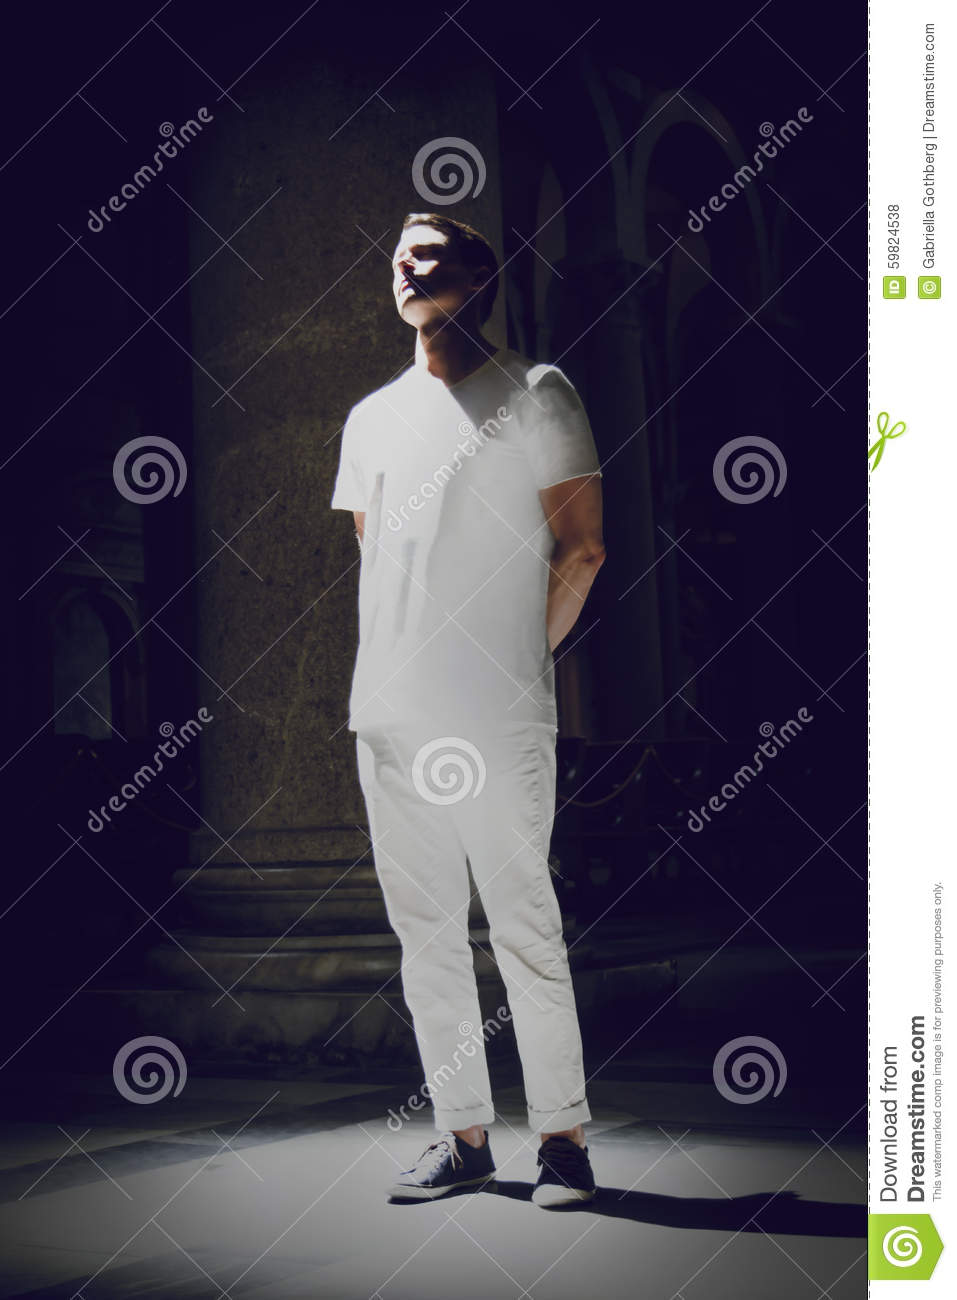 Man in white flooded in light from the ceiling window of a church.